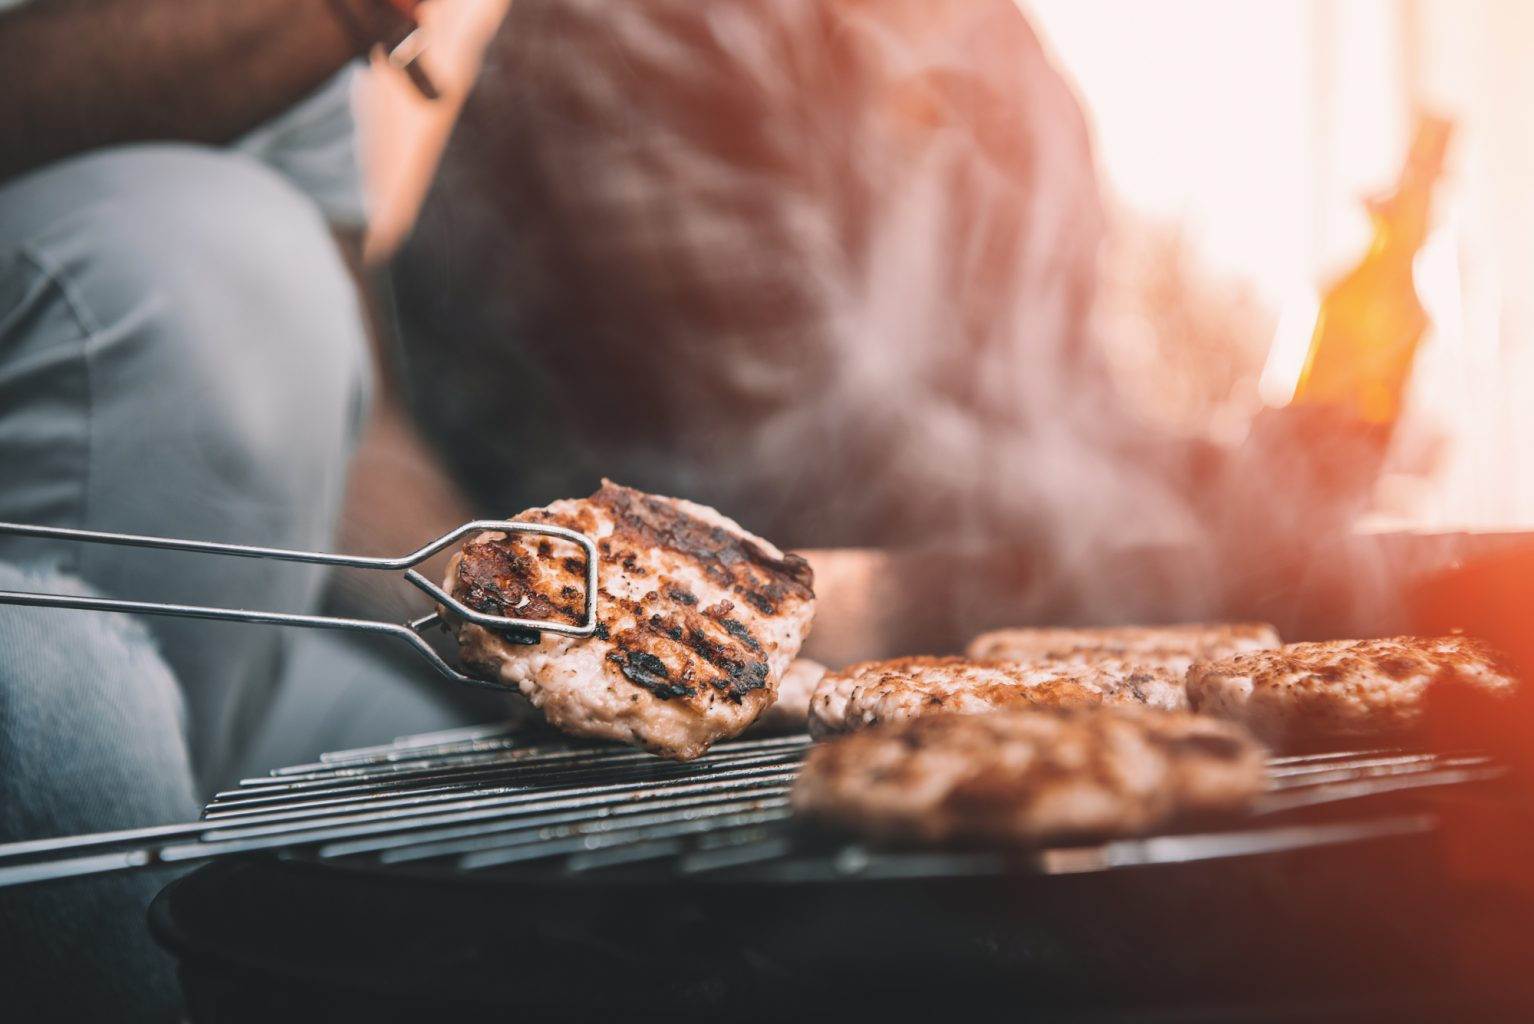 Meat Preparing on Grill